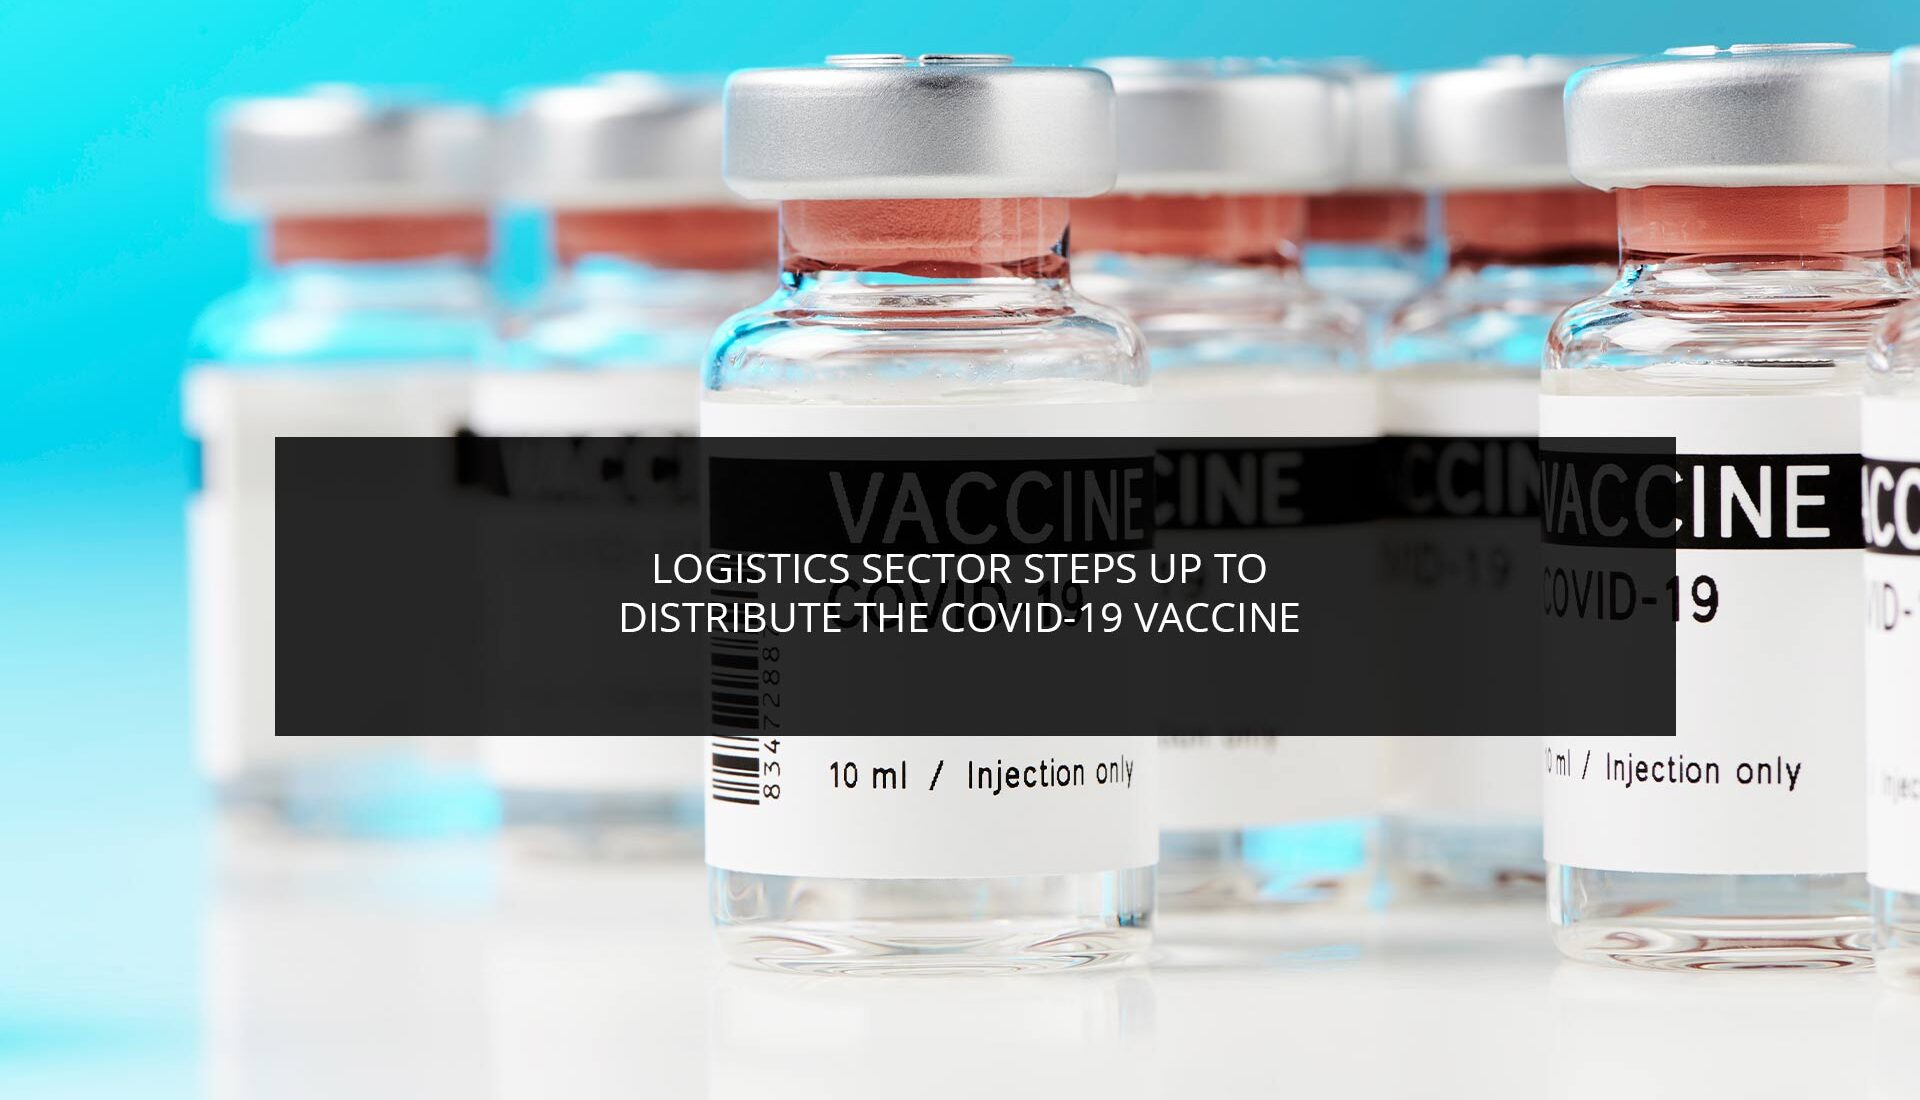 Logistics Sector Steps Up to Distribute the COVID-19 Vaccine